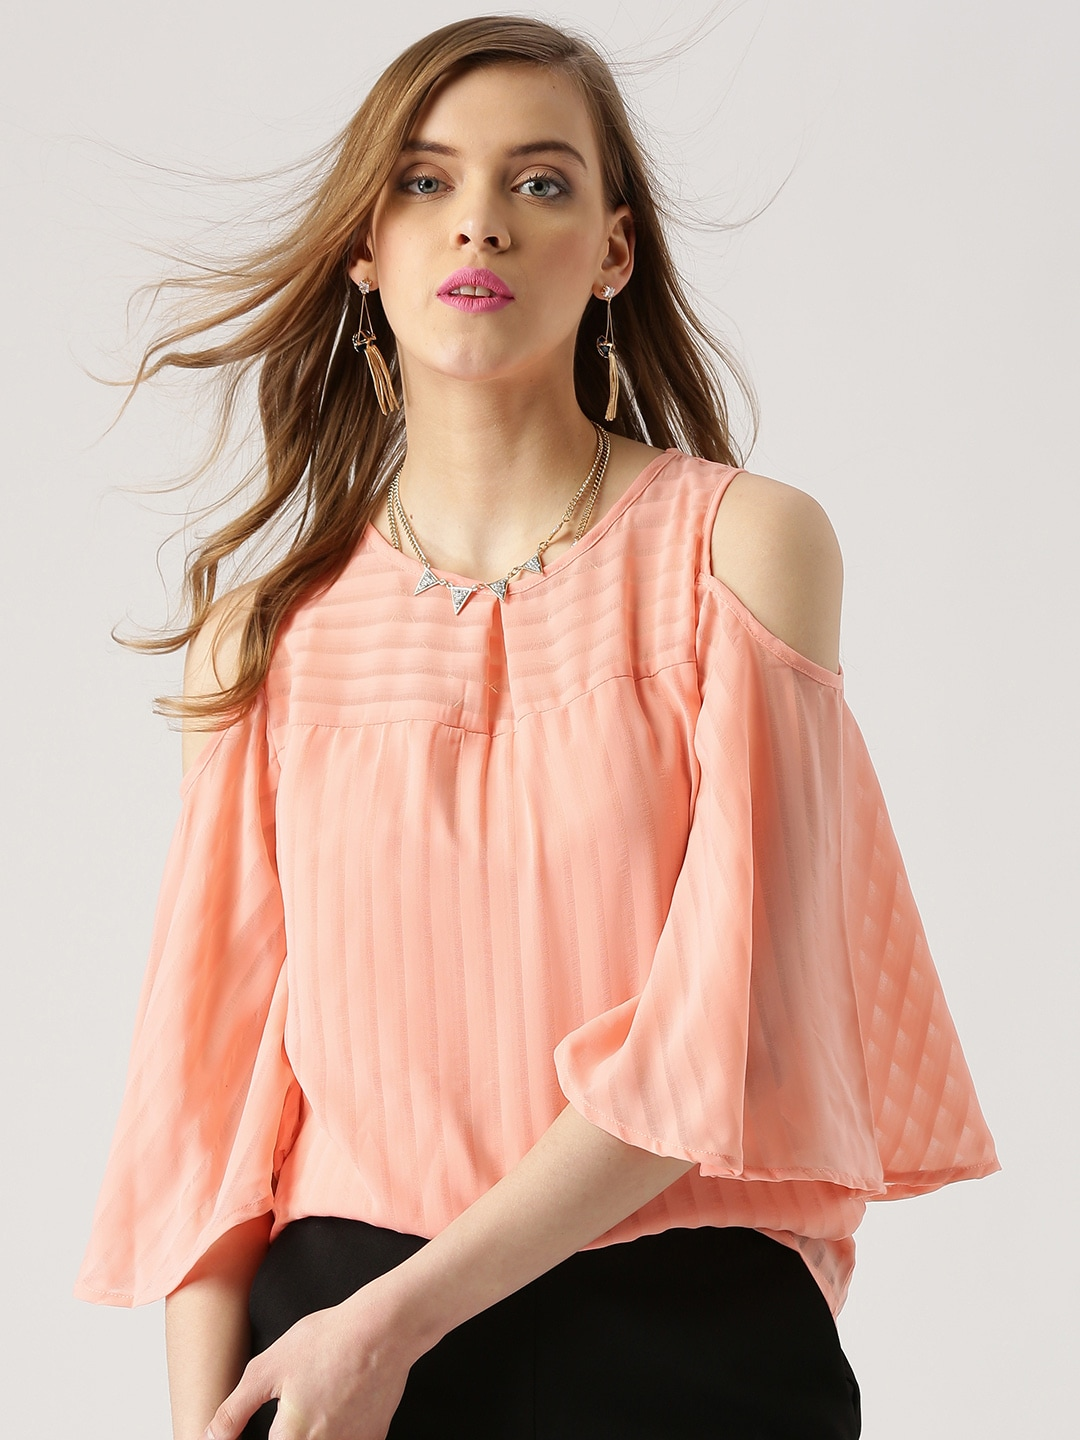 c2fefa5c454 Cold Shoulder Tops - Buy Cold Shoulder Tops for Women Online - Myntra